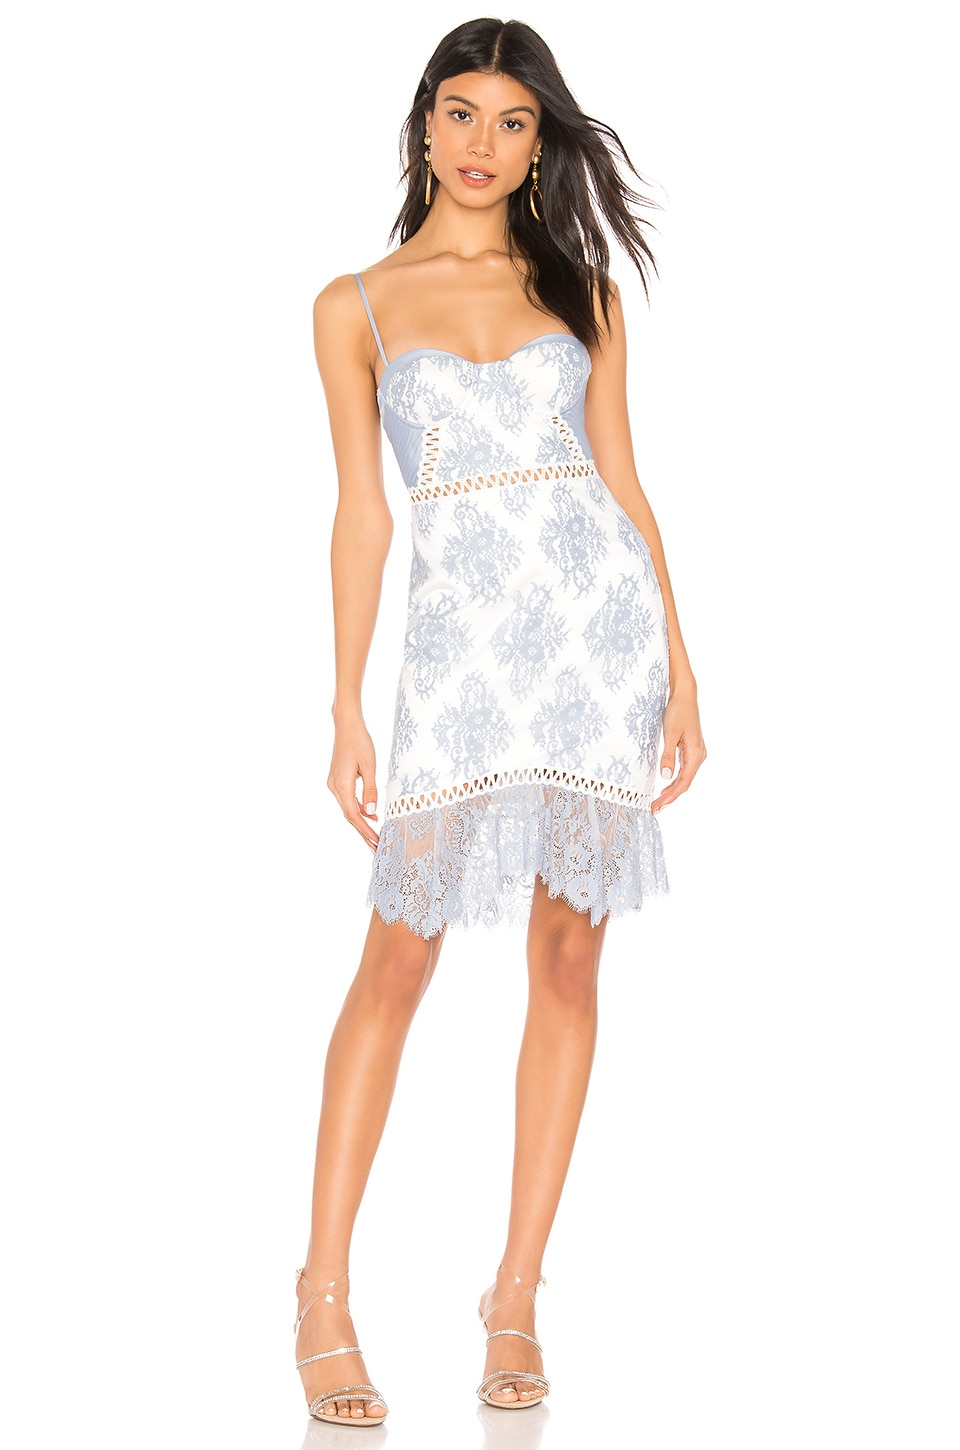 X by NBD Timantha Mini Dress in Baby Blue & White